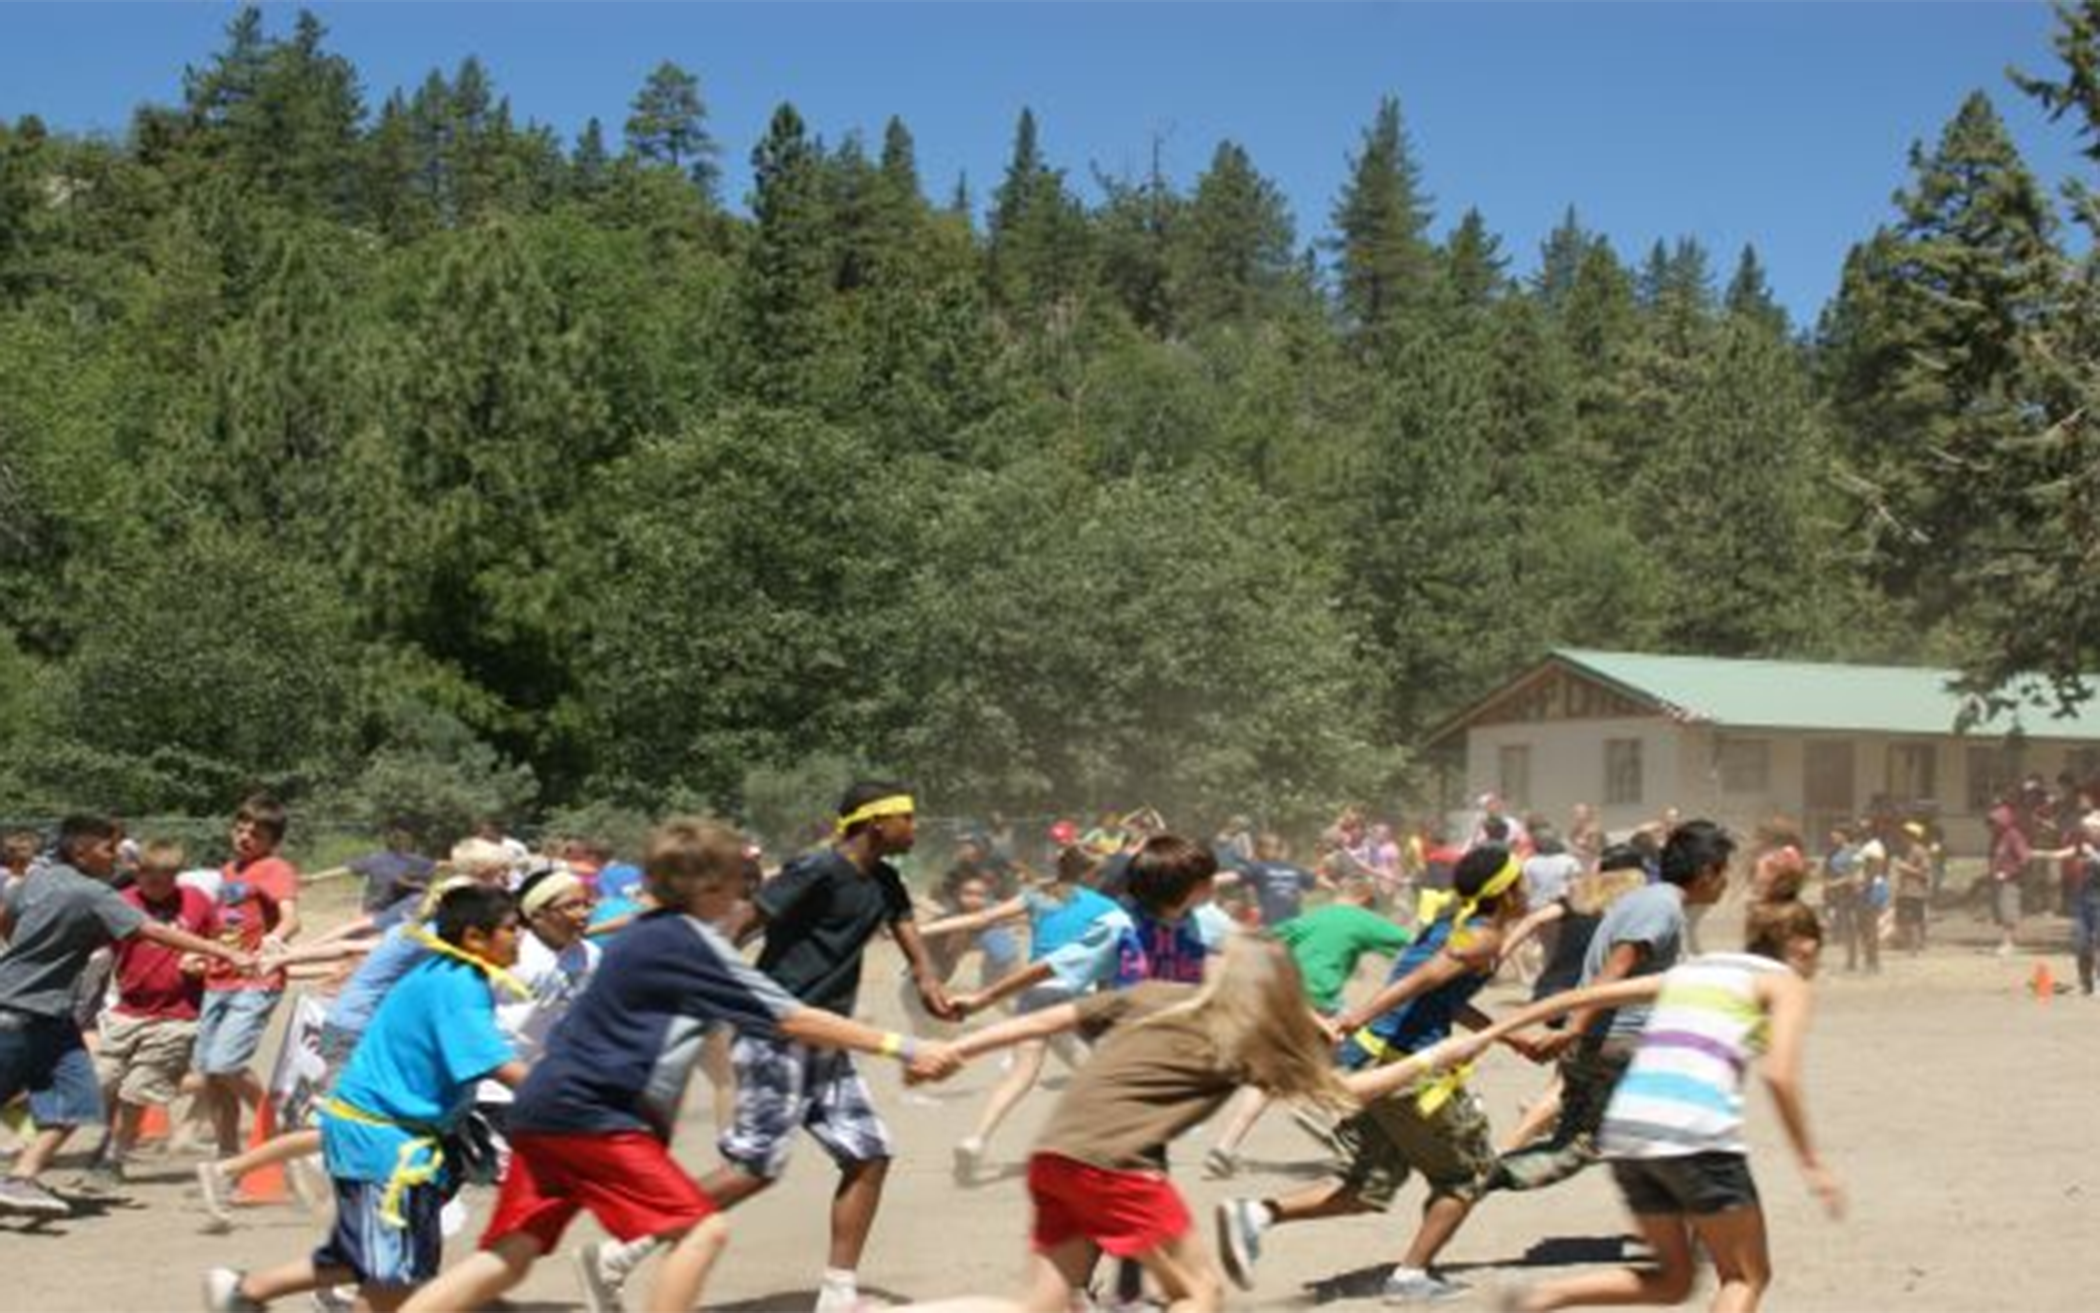 California Camp Encourages Racial Reconciliation